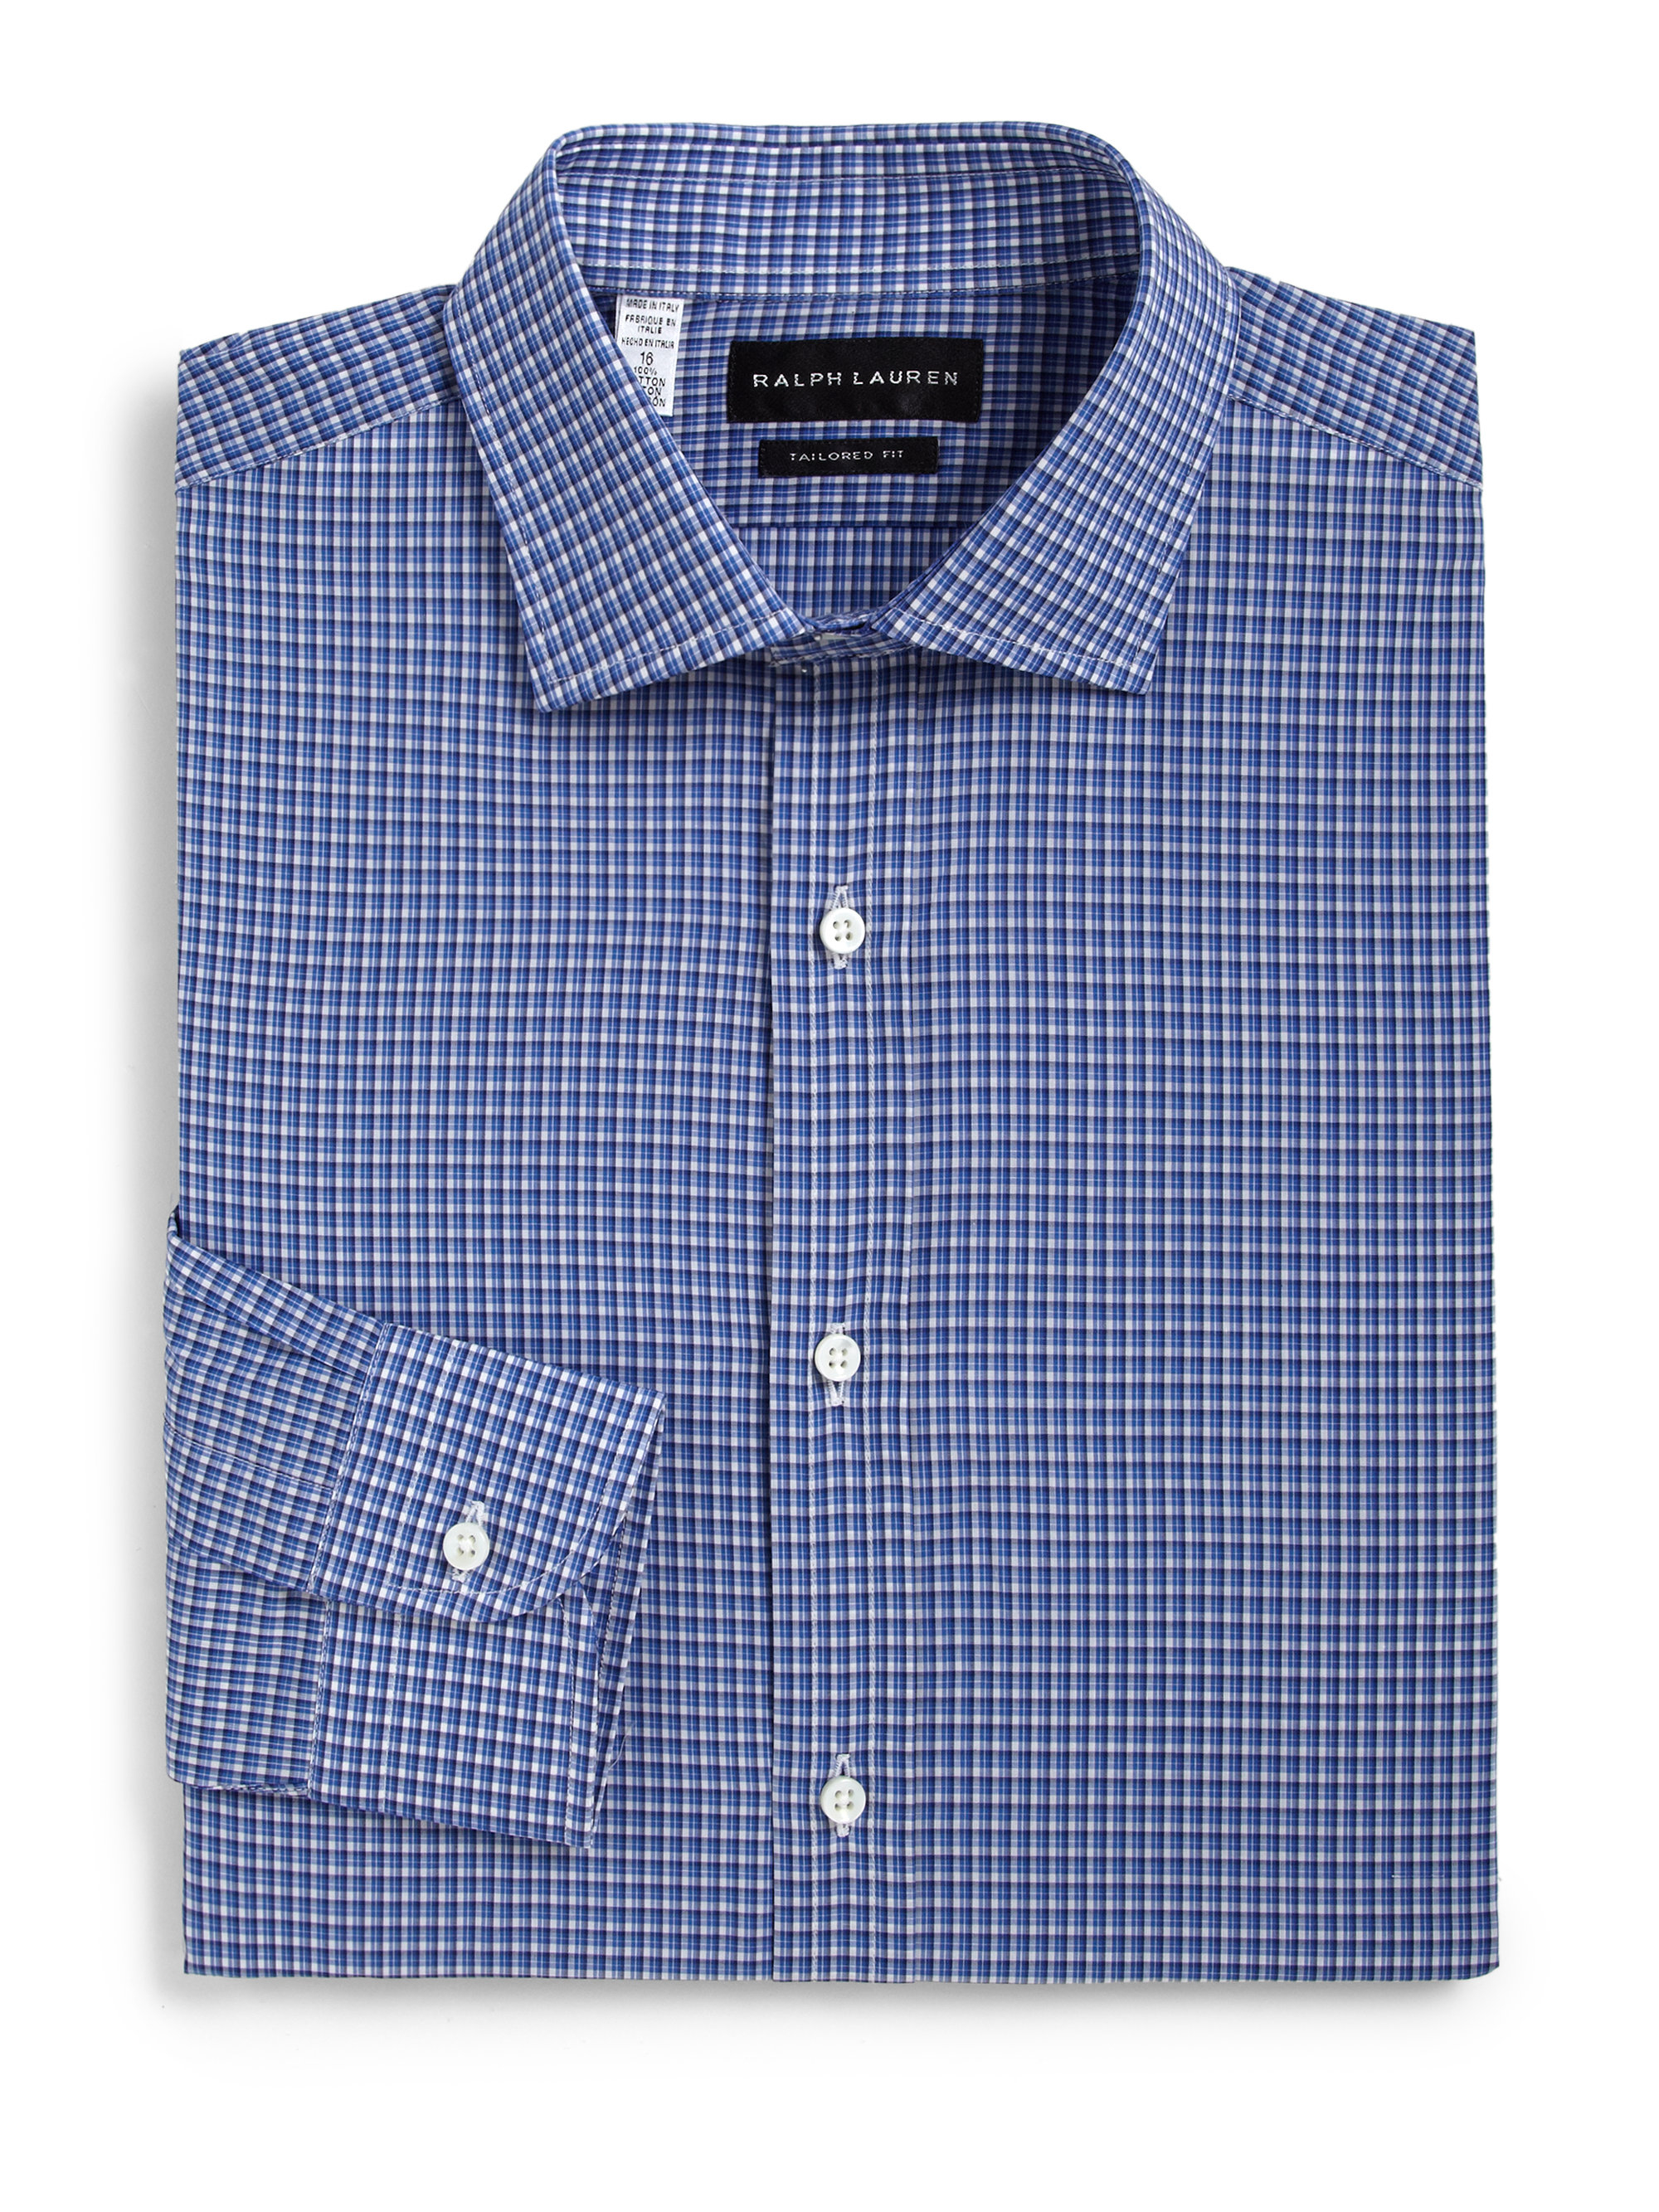 Lyst ralph lauren black label tailored fit check dress for Tailored fit dress shirts